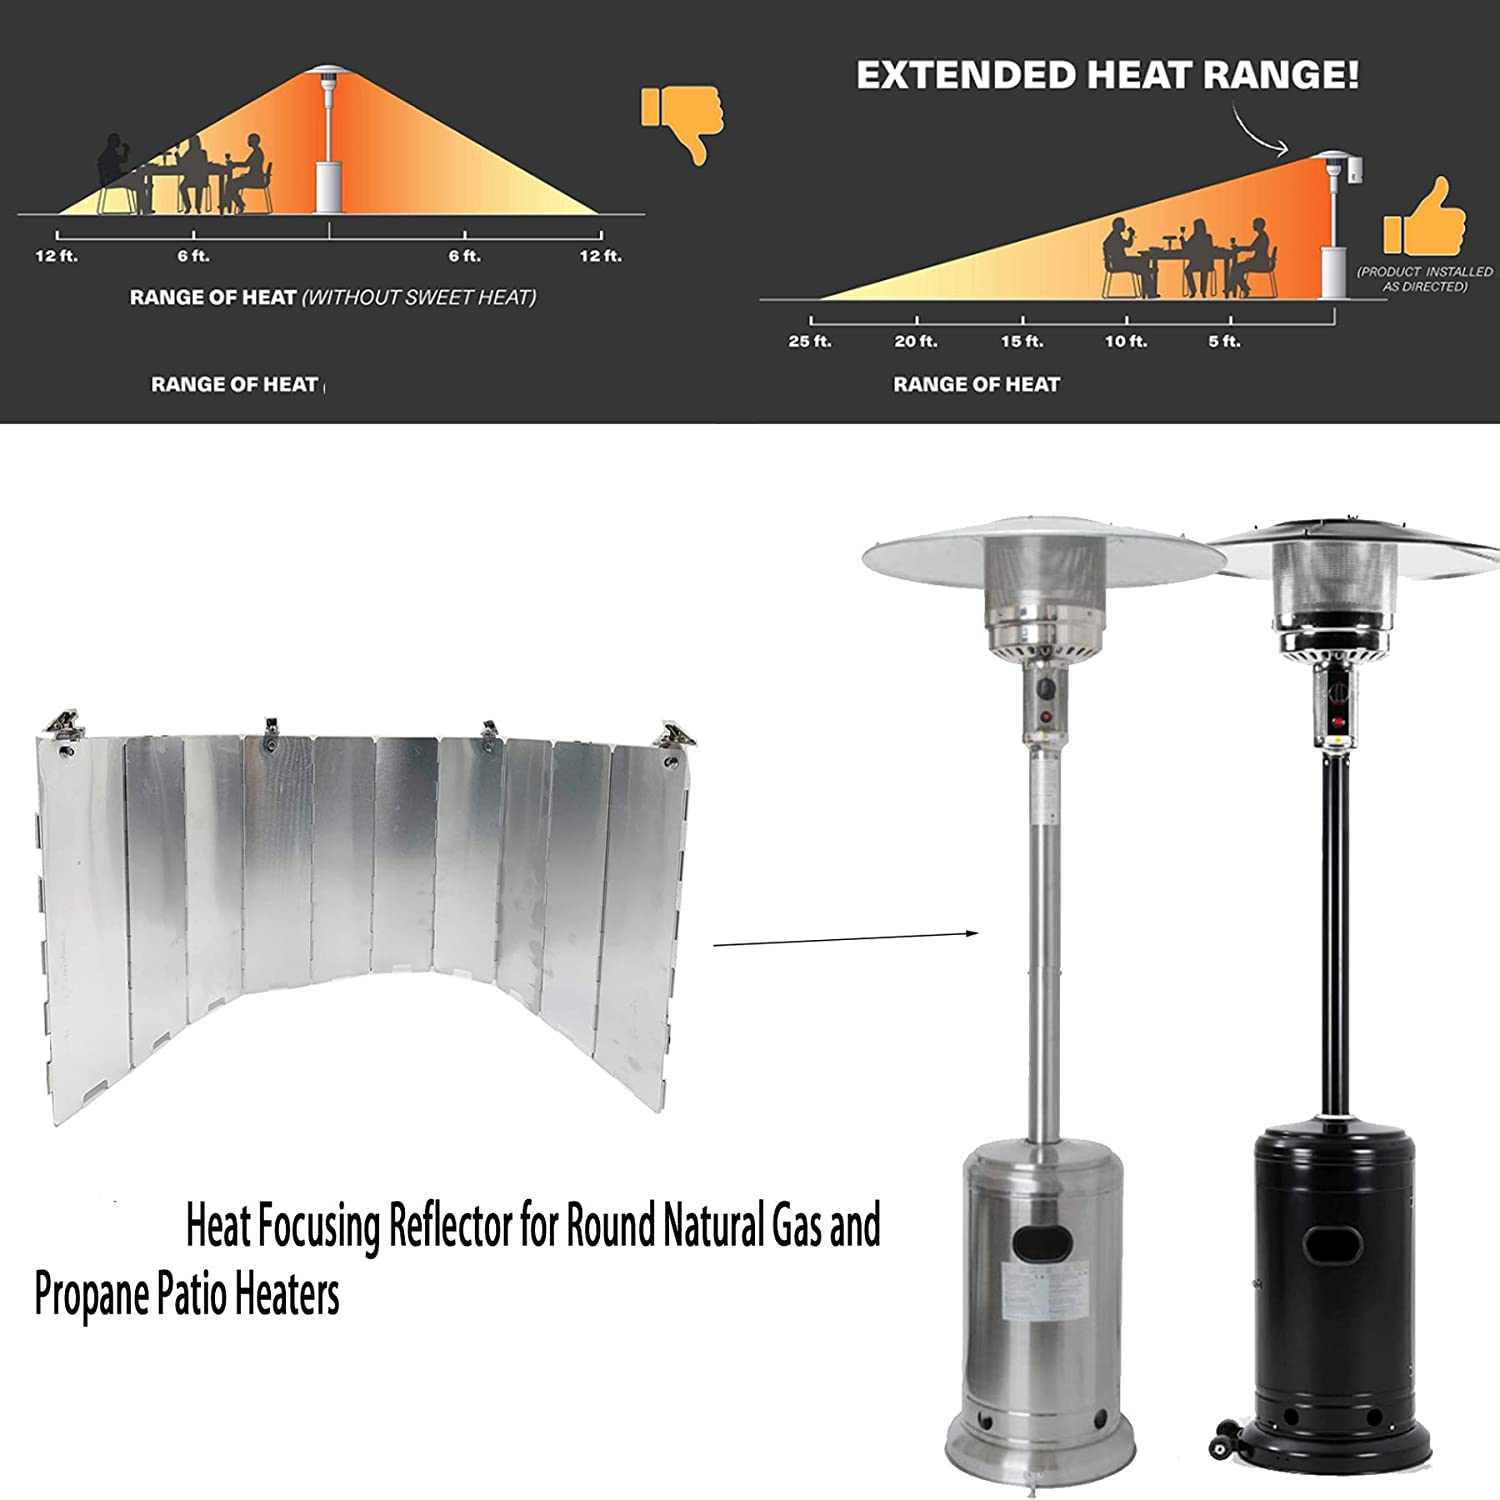 KYZETJD Outdoor Heater Focusing Reflector for Round Natural Gas Propane Patio Heaters